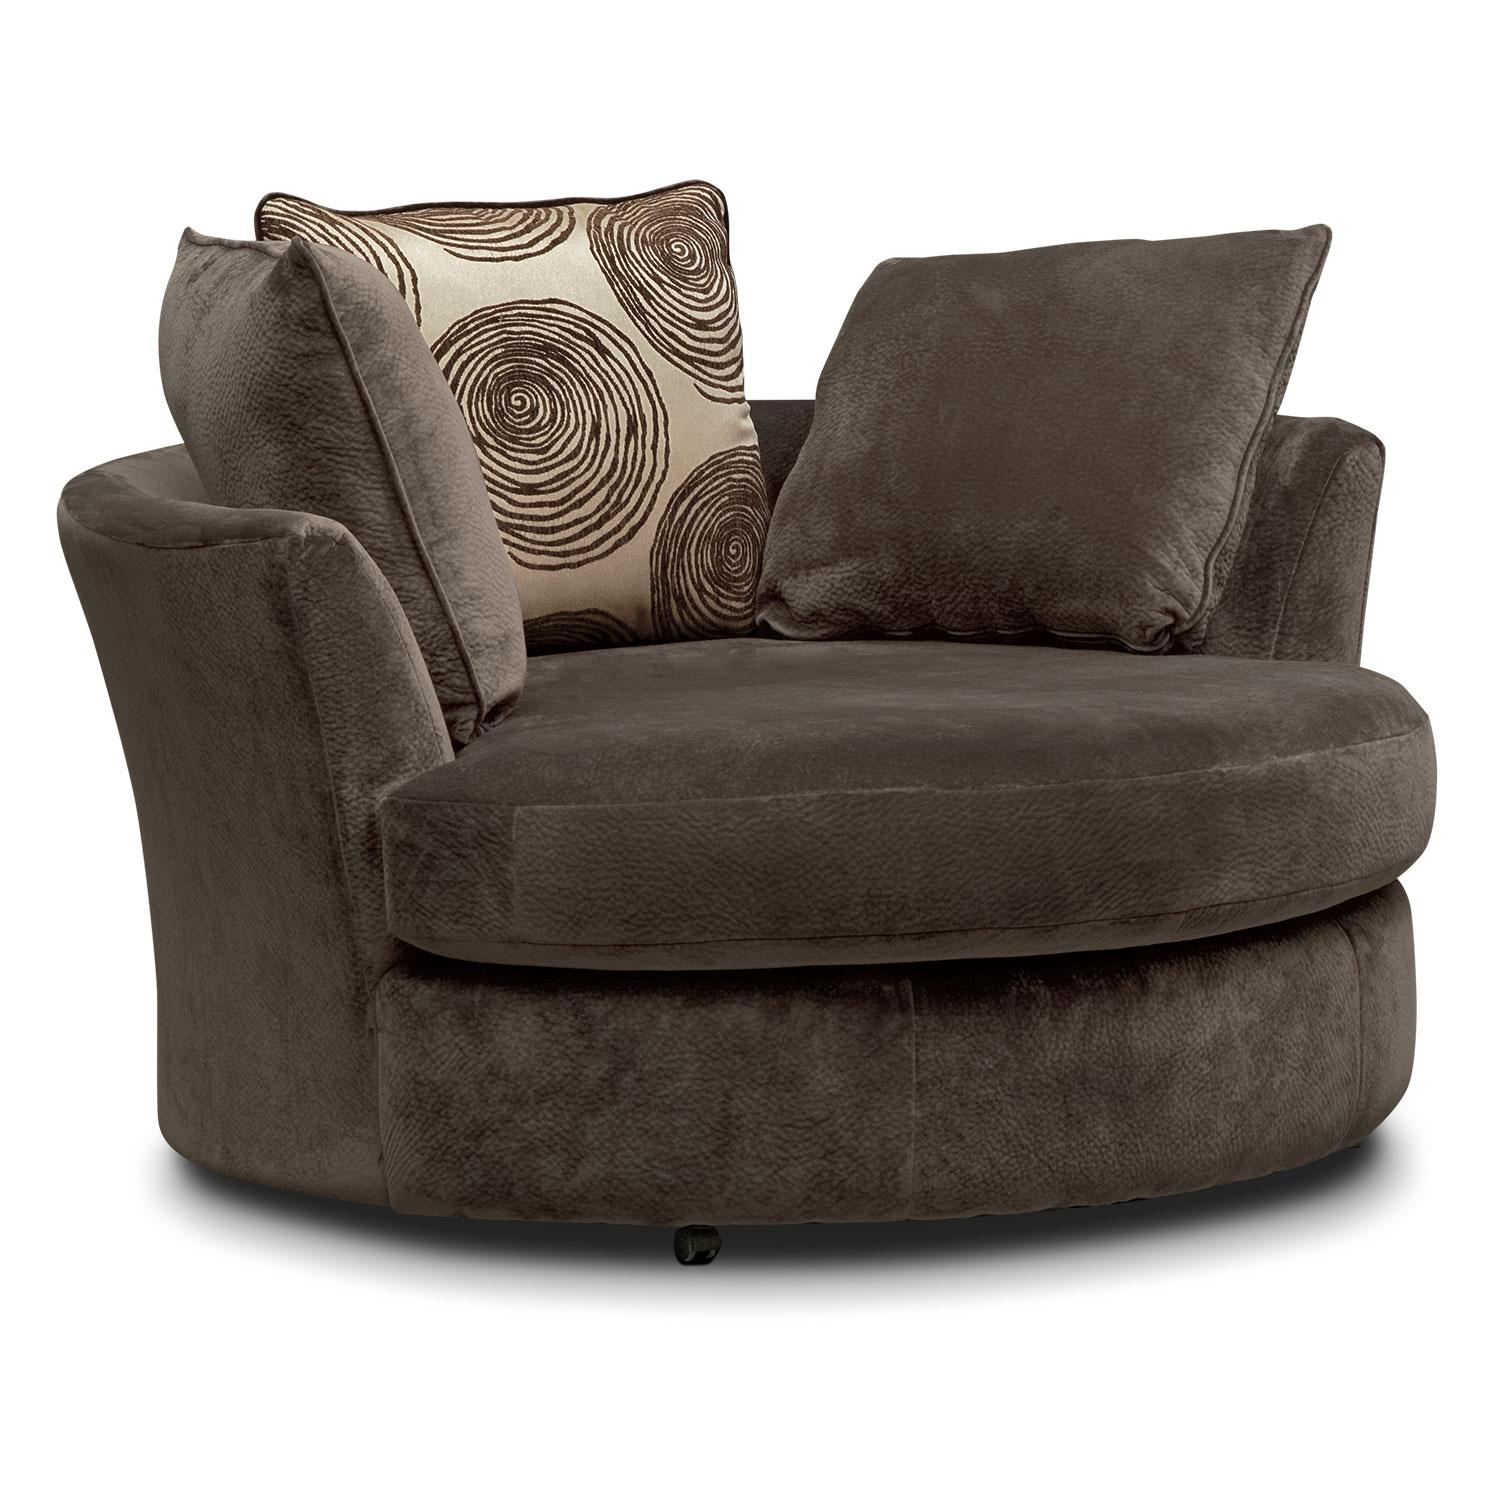 Cordelle Sofa And Swivel Chair Set – Chocolate | Value City Furniture With Regard To Sofa And Chair Set (Image 6 of 20)